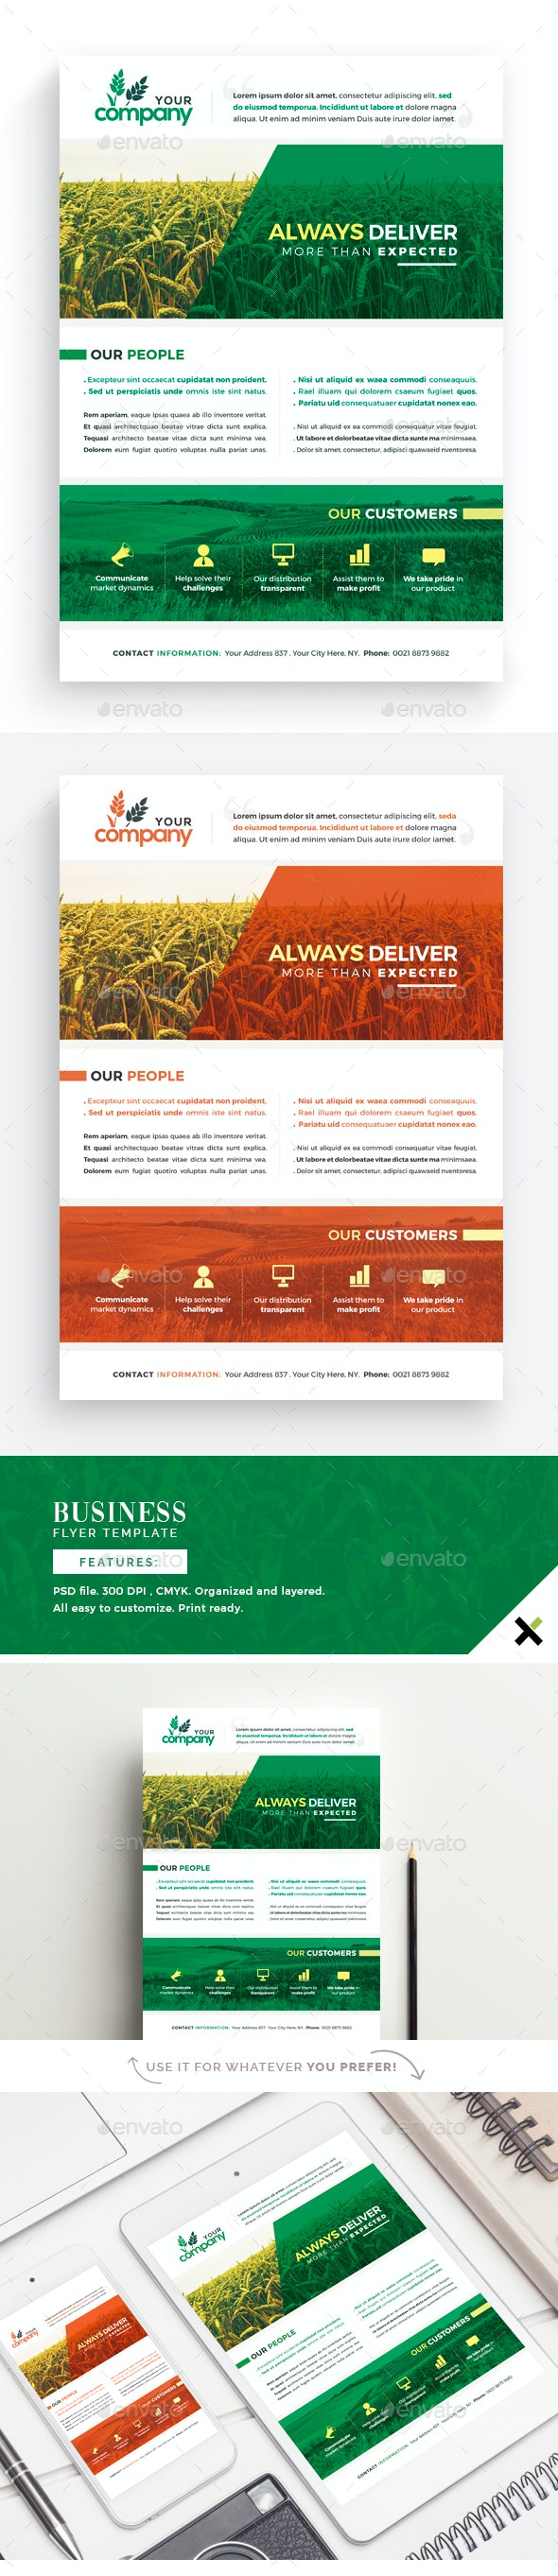 Business Presentation Flyer Template - Corporate Business Cards